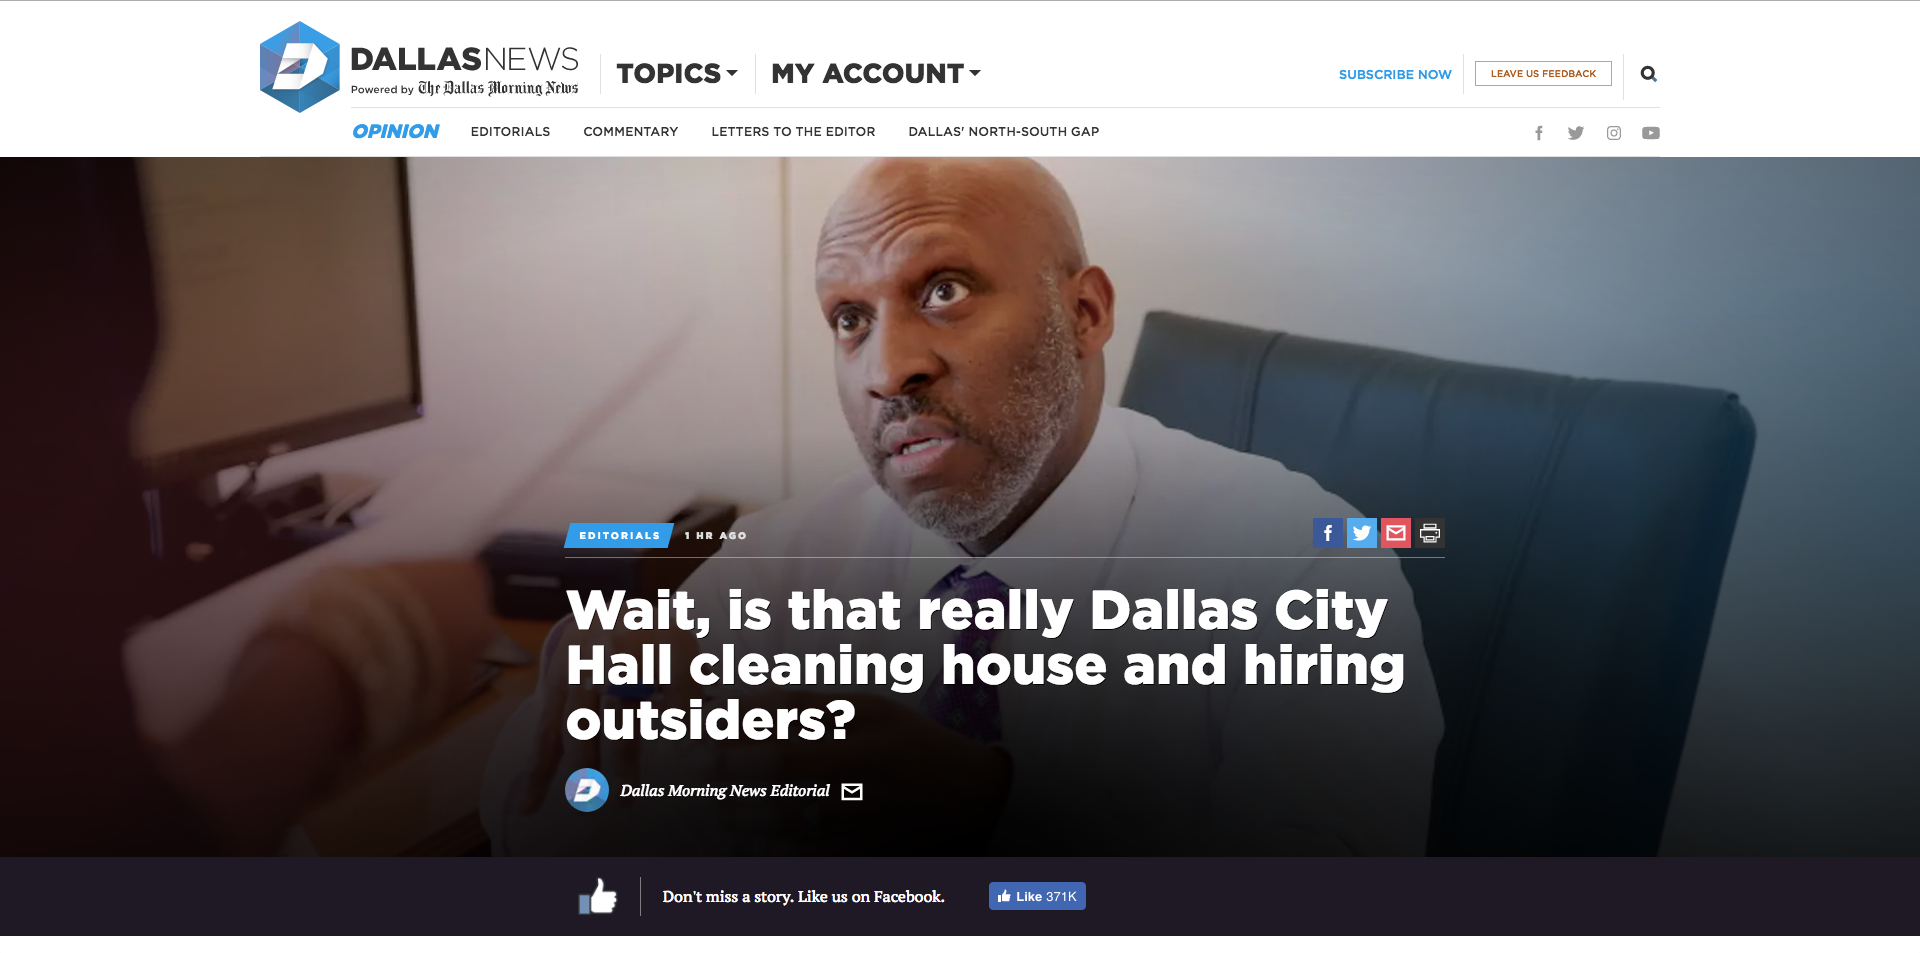 dallas-news-typography.png